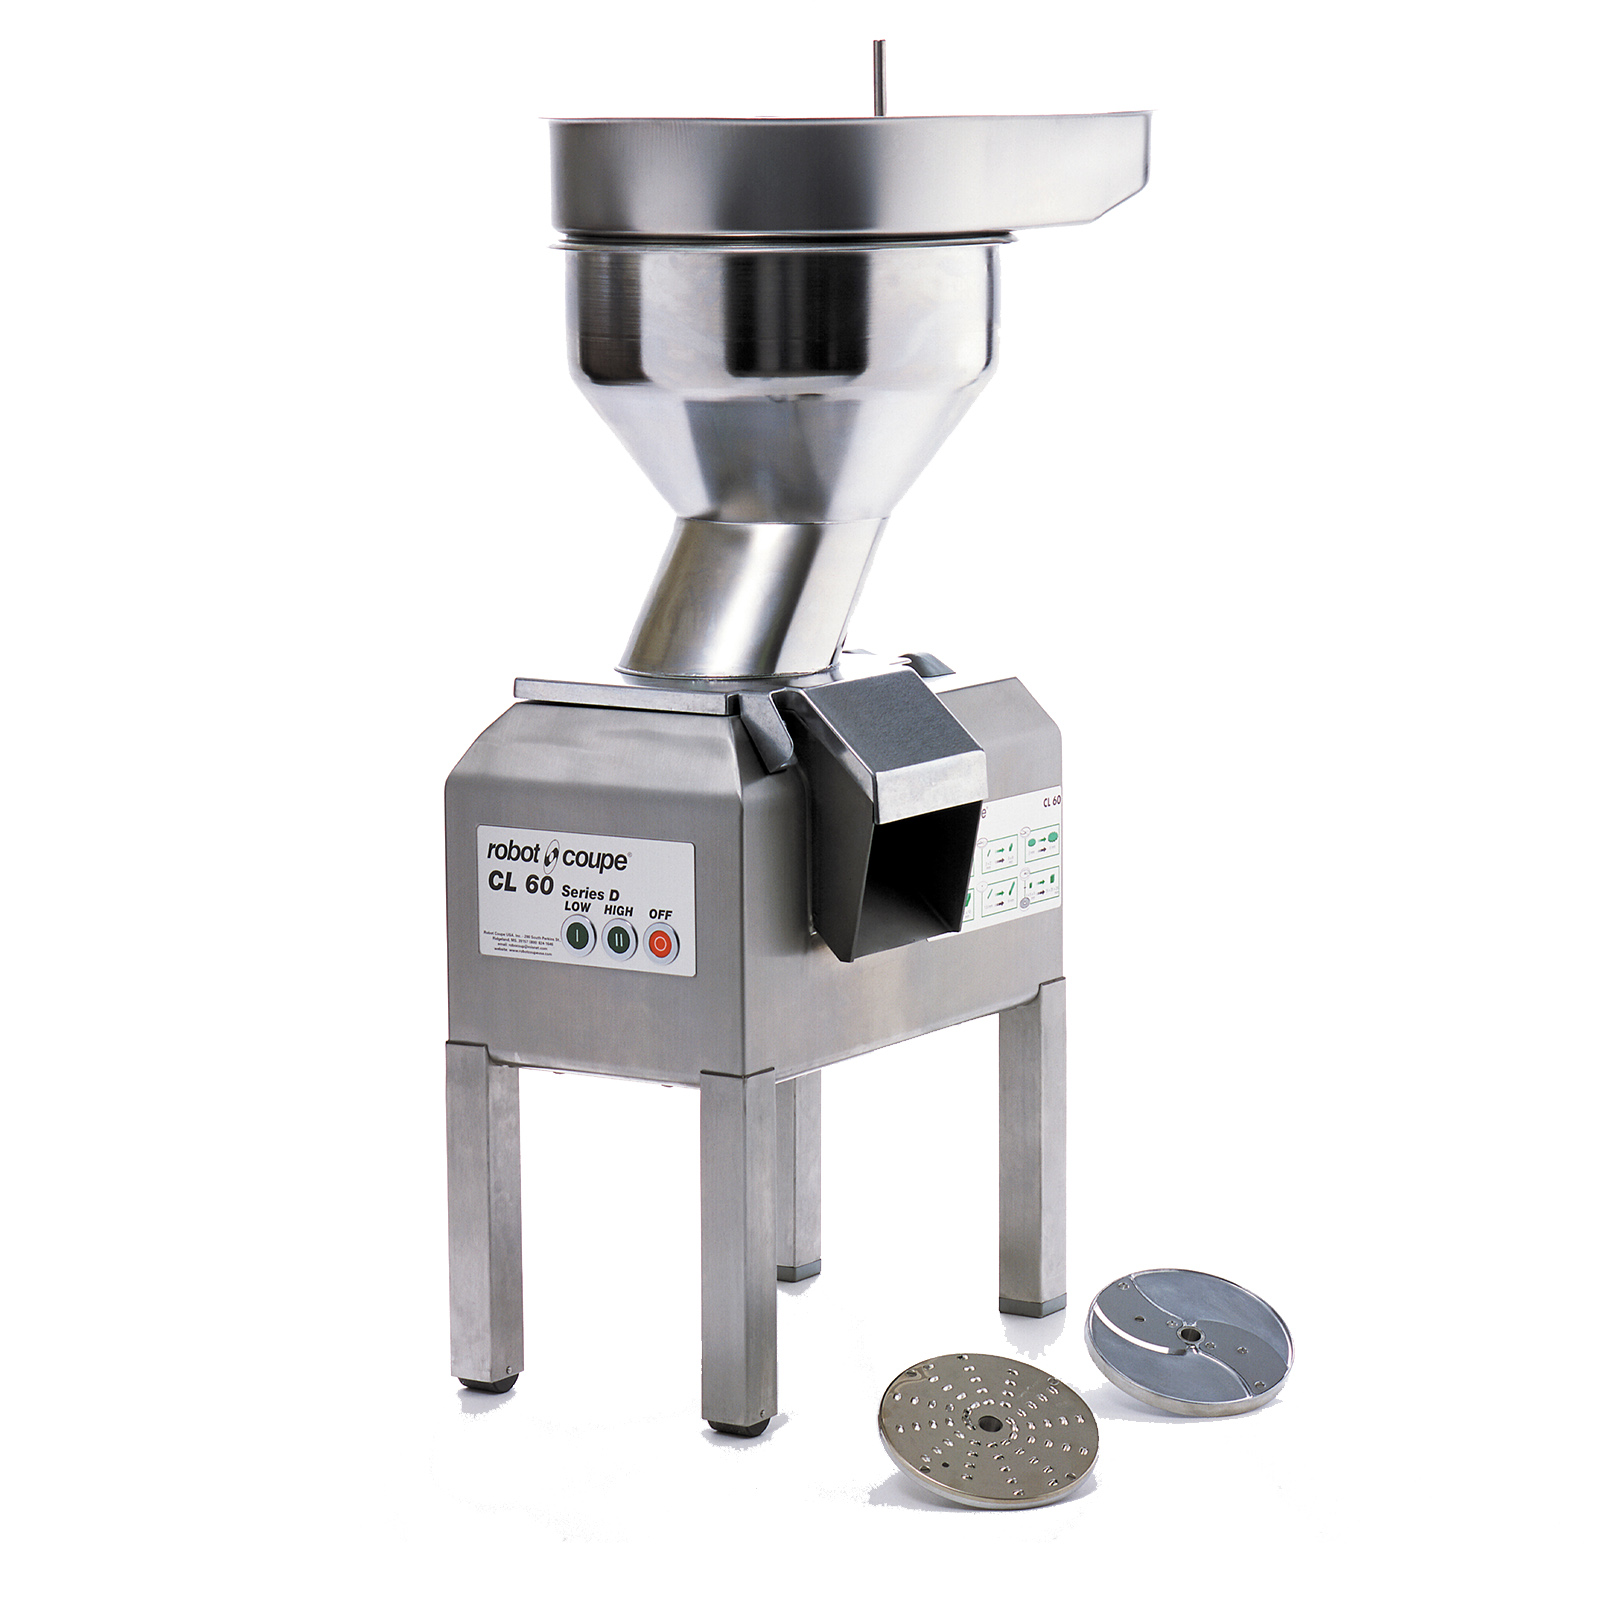 Robot Coupe CL60 BULK W/STAND food processor, floor model